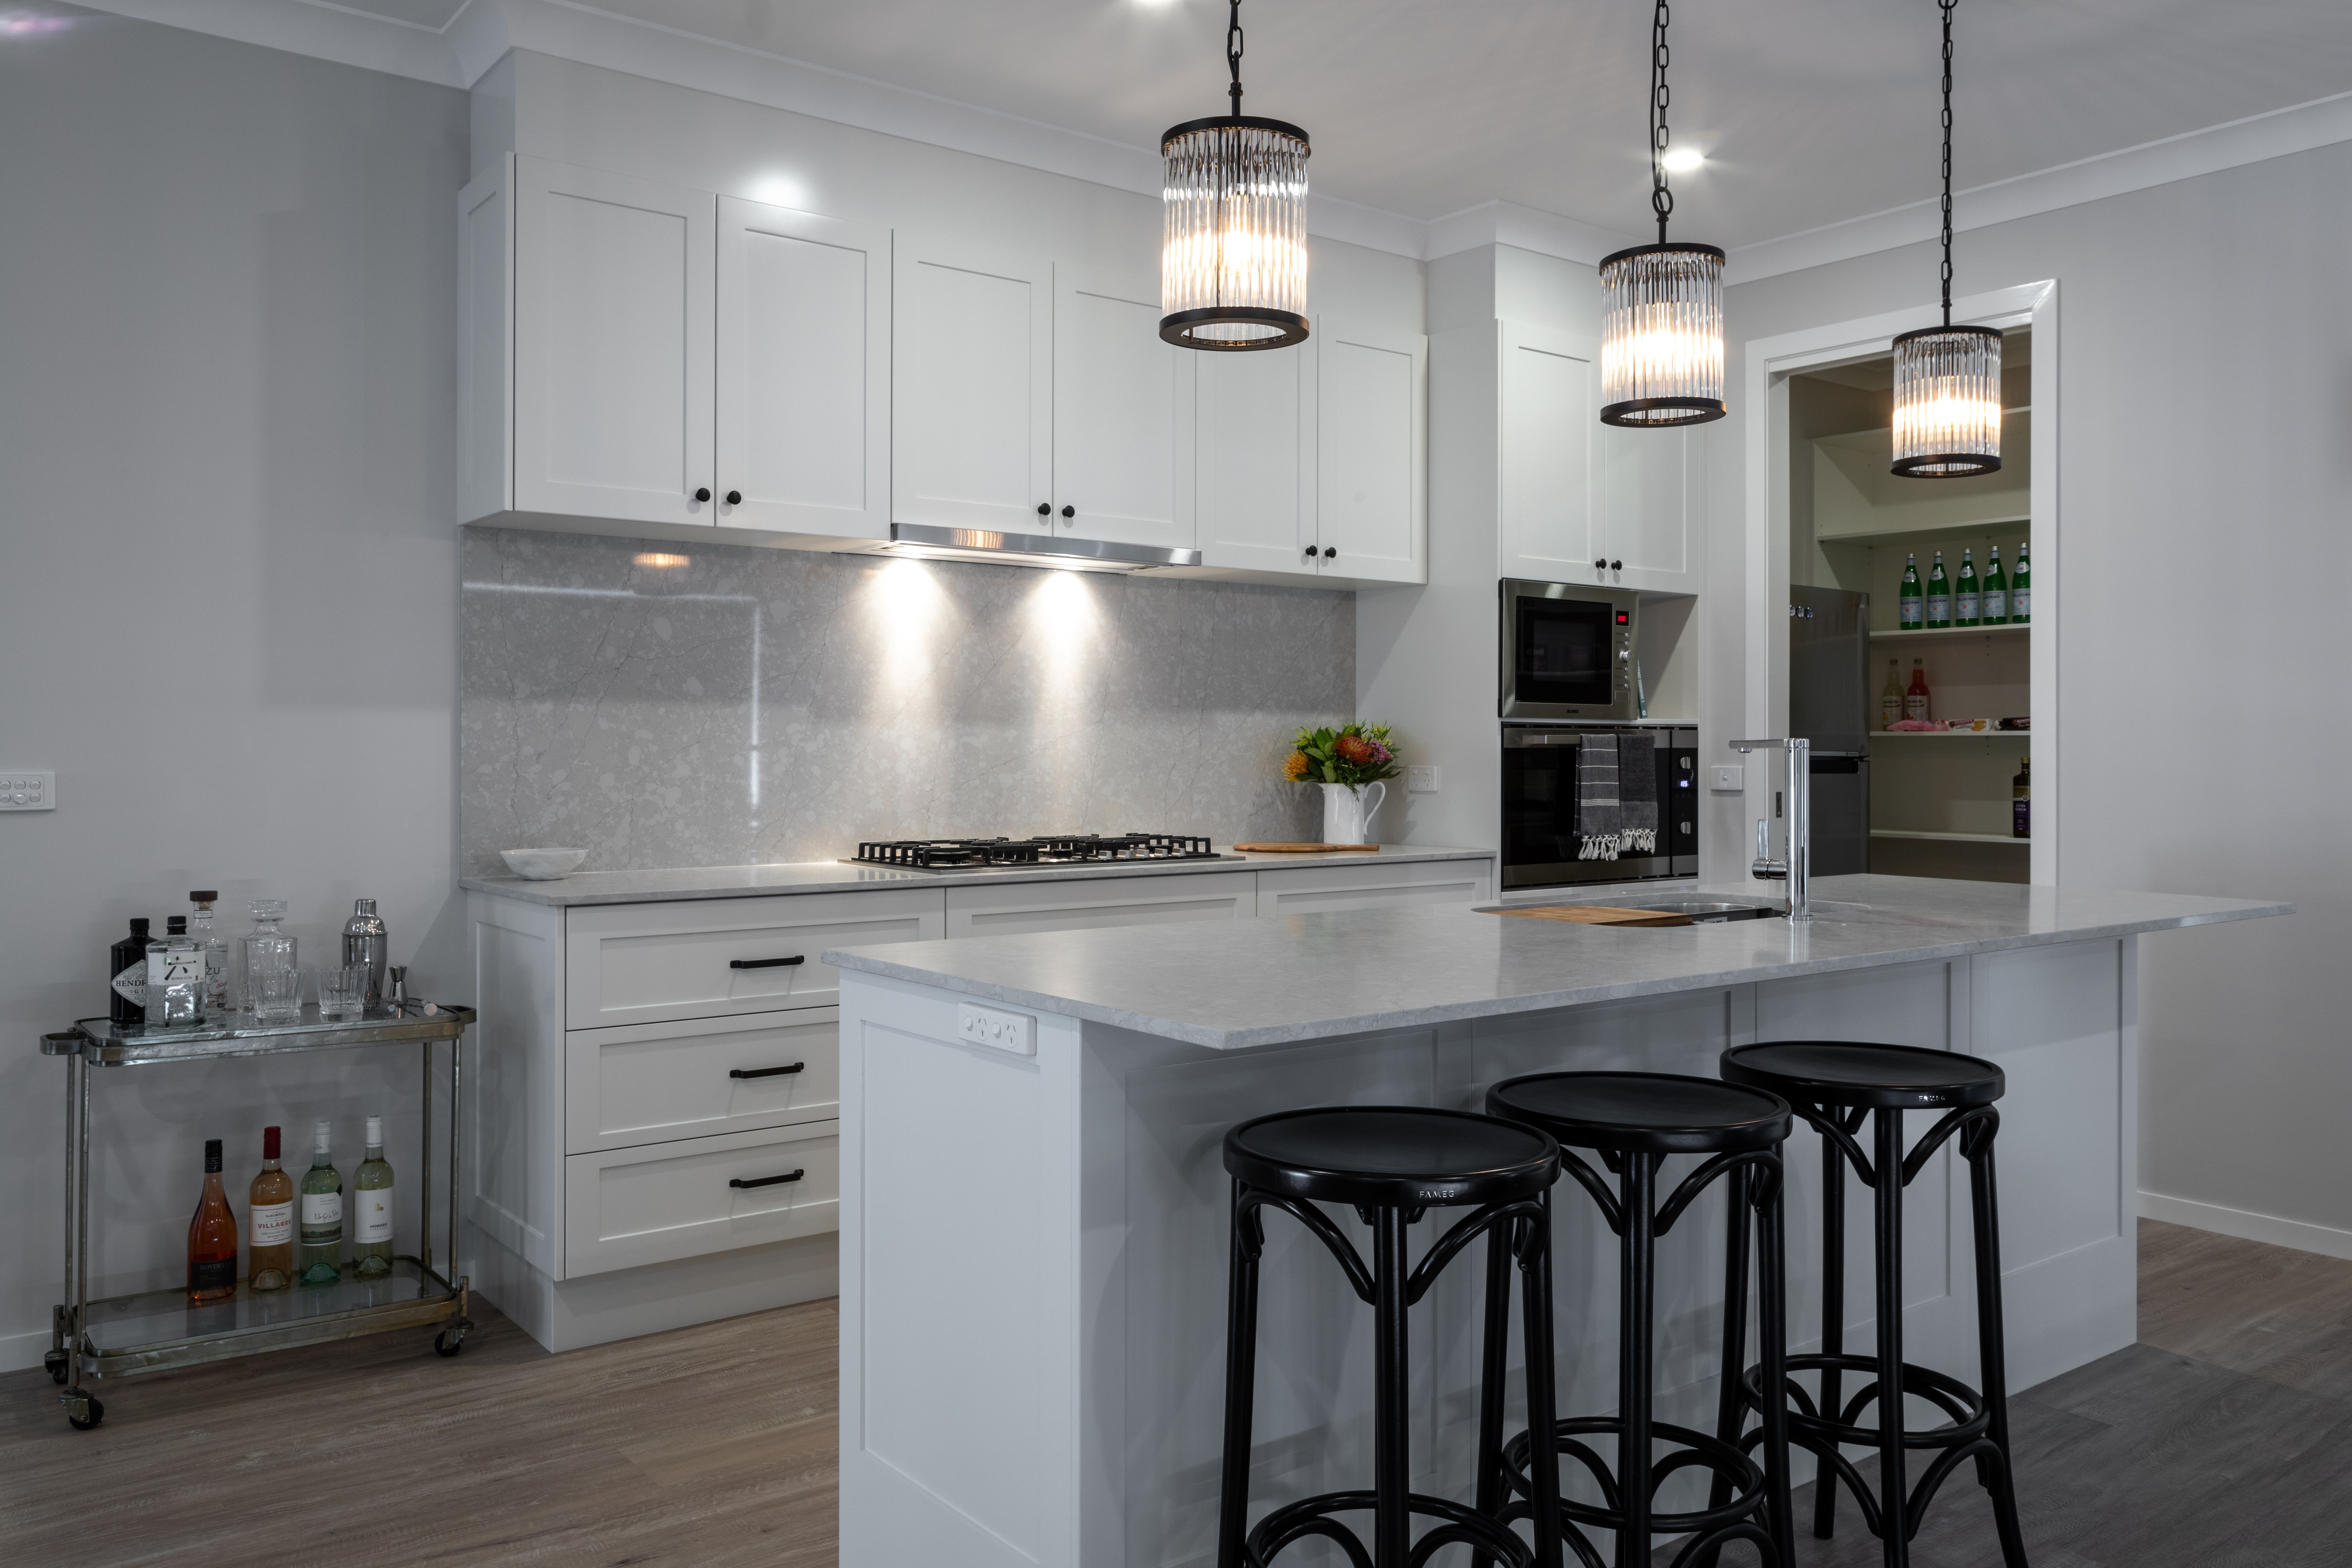 Give Your Kitchen Some Extra Flair With Stunning Pendant Lights Above Your Breakfast Bar Or Island Bench Display Homes Beautiful Kitchens Kitchen Benches Kitchen breakfast bar pendant lights